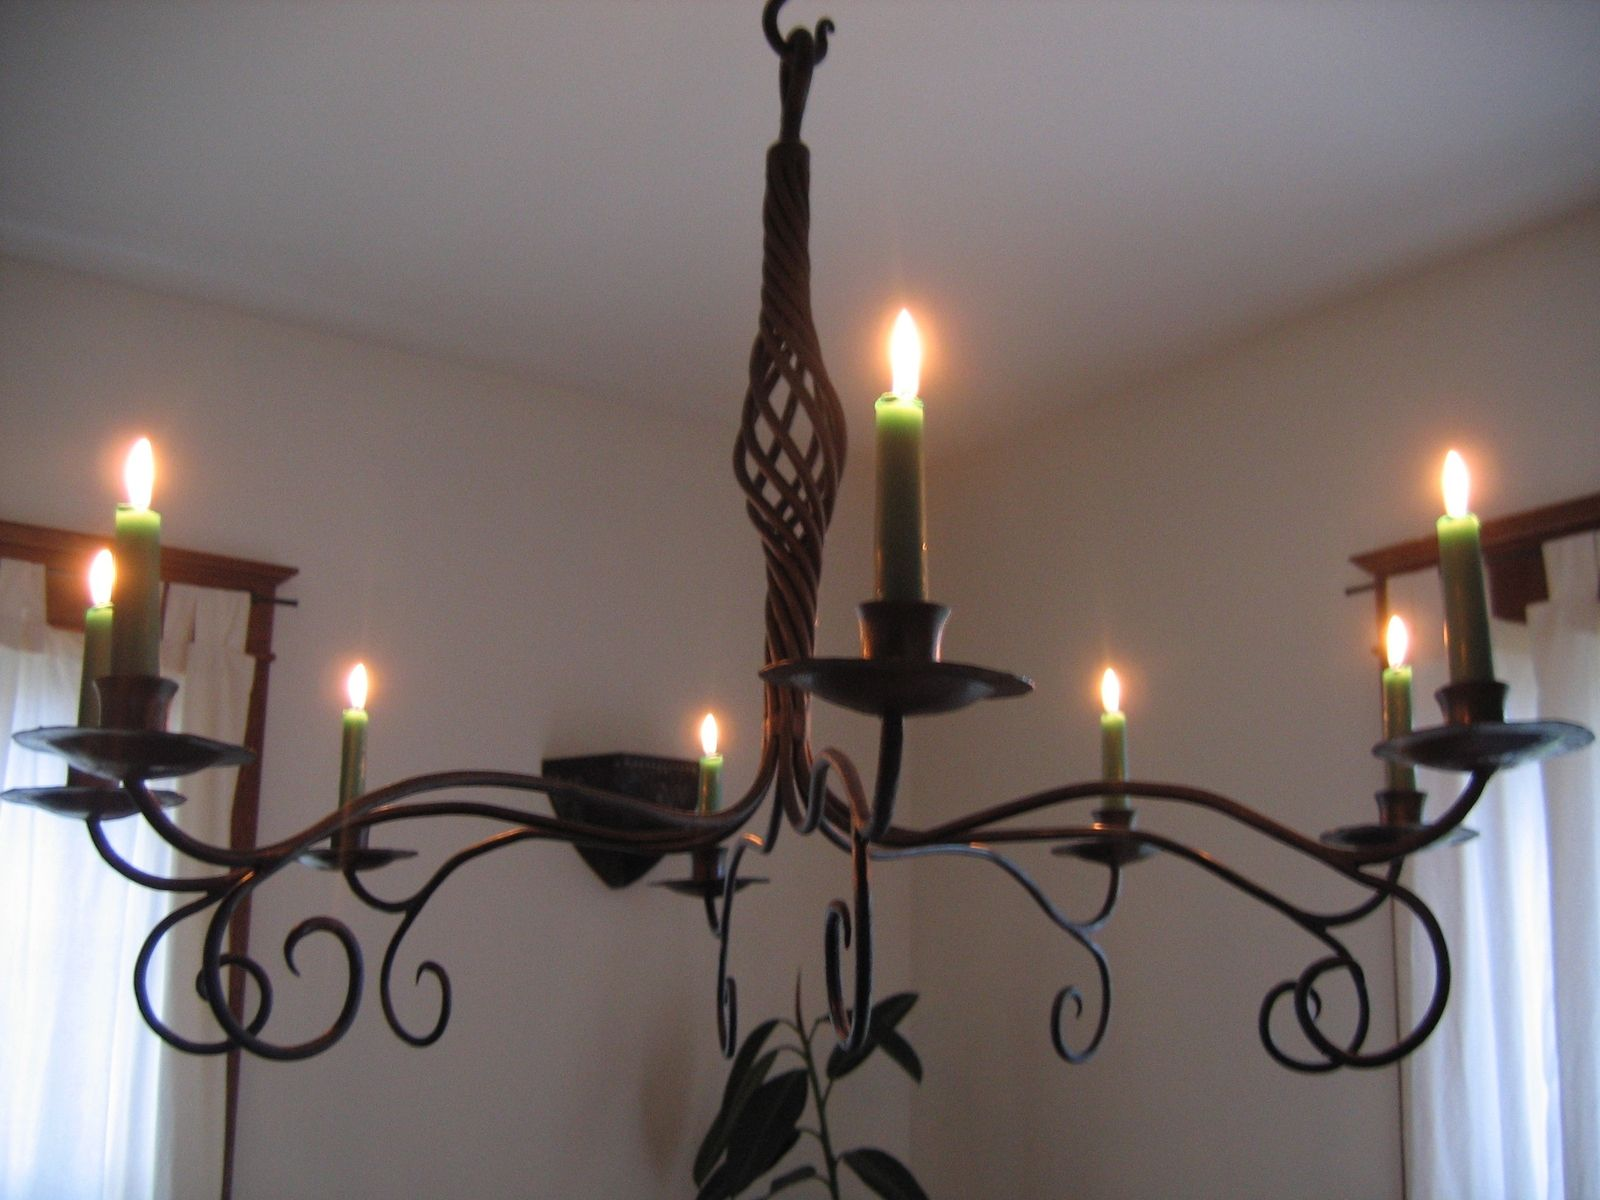 Hand Crafted Forged Iron Candle Chandelier by Mystic Metallurgy